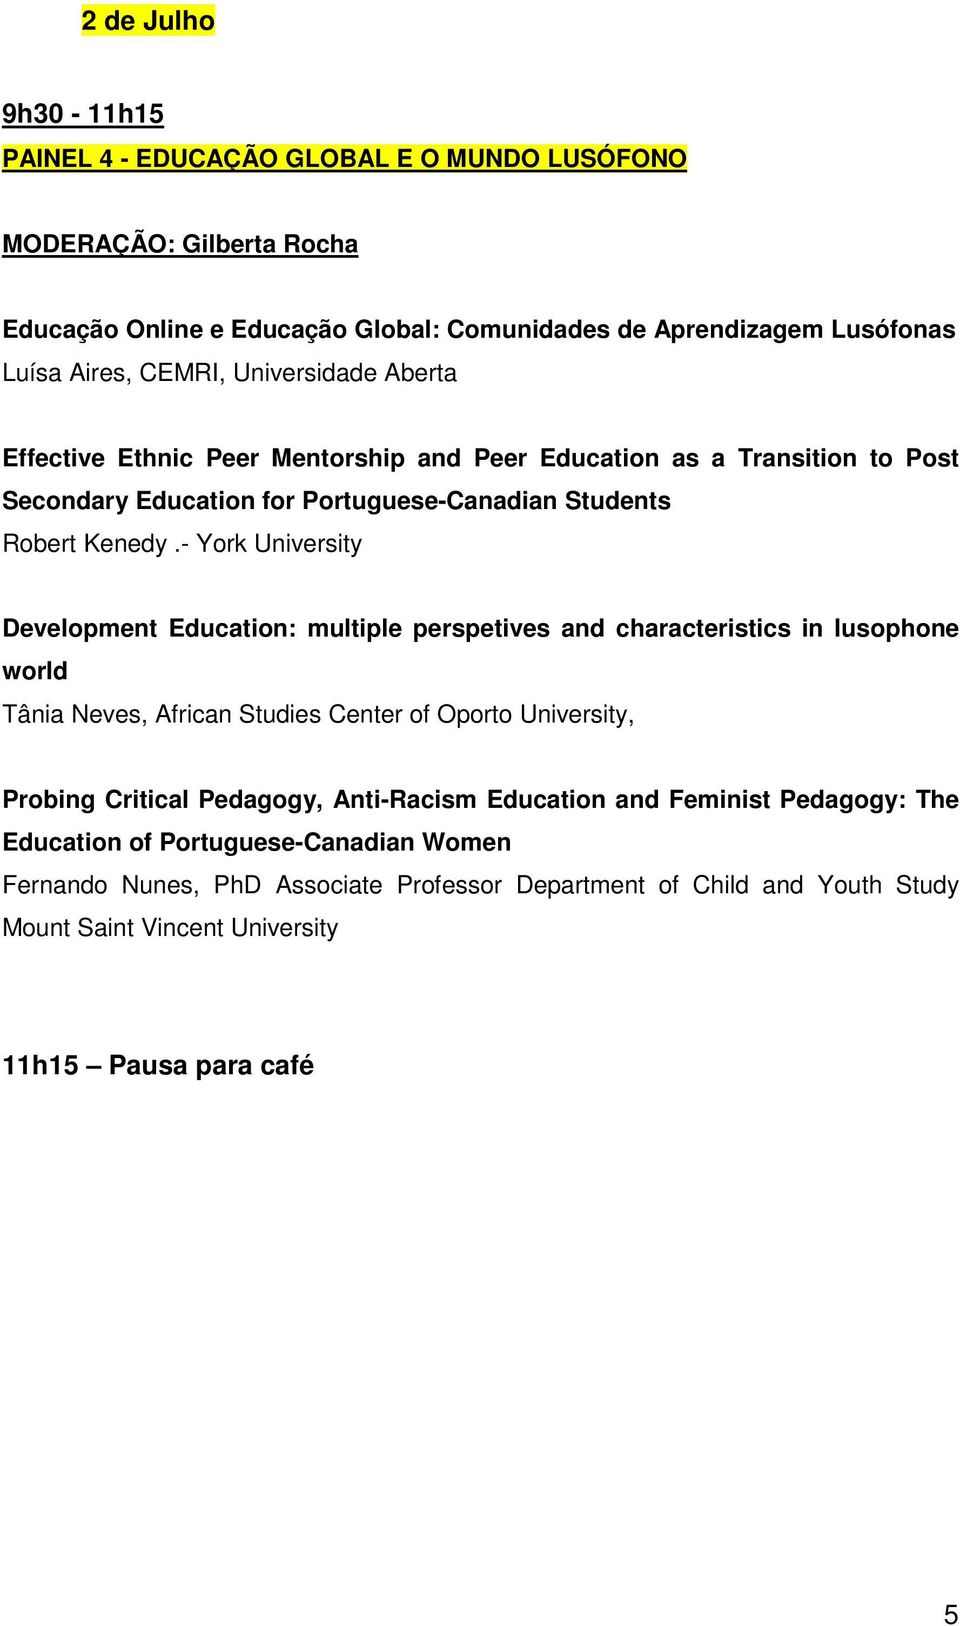 - York University Development Education: multiple perspetives and characteristics in lusophone world Tâ nia Neves, African Studies Center of Oporto University, Probing Critical Pedagogy,